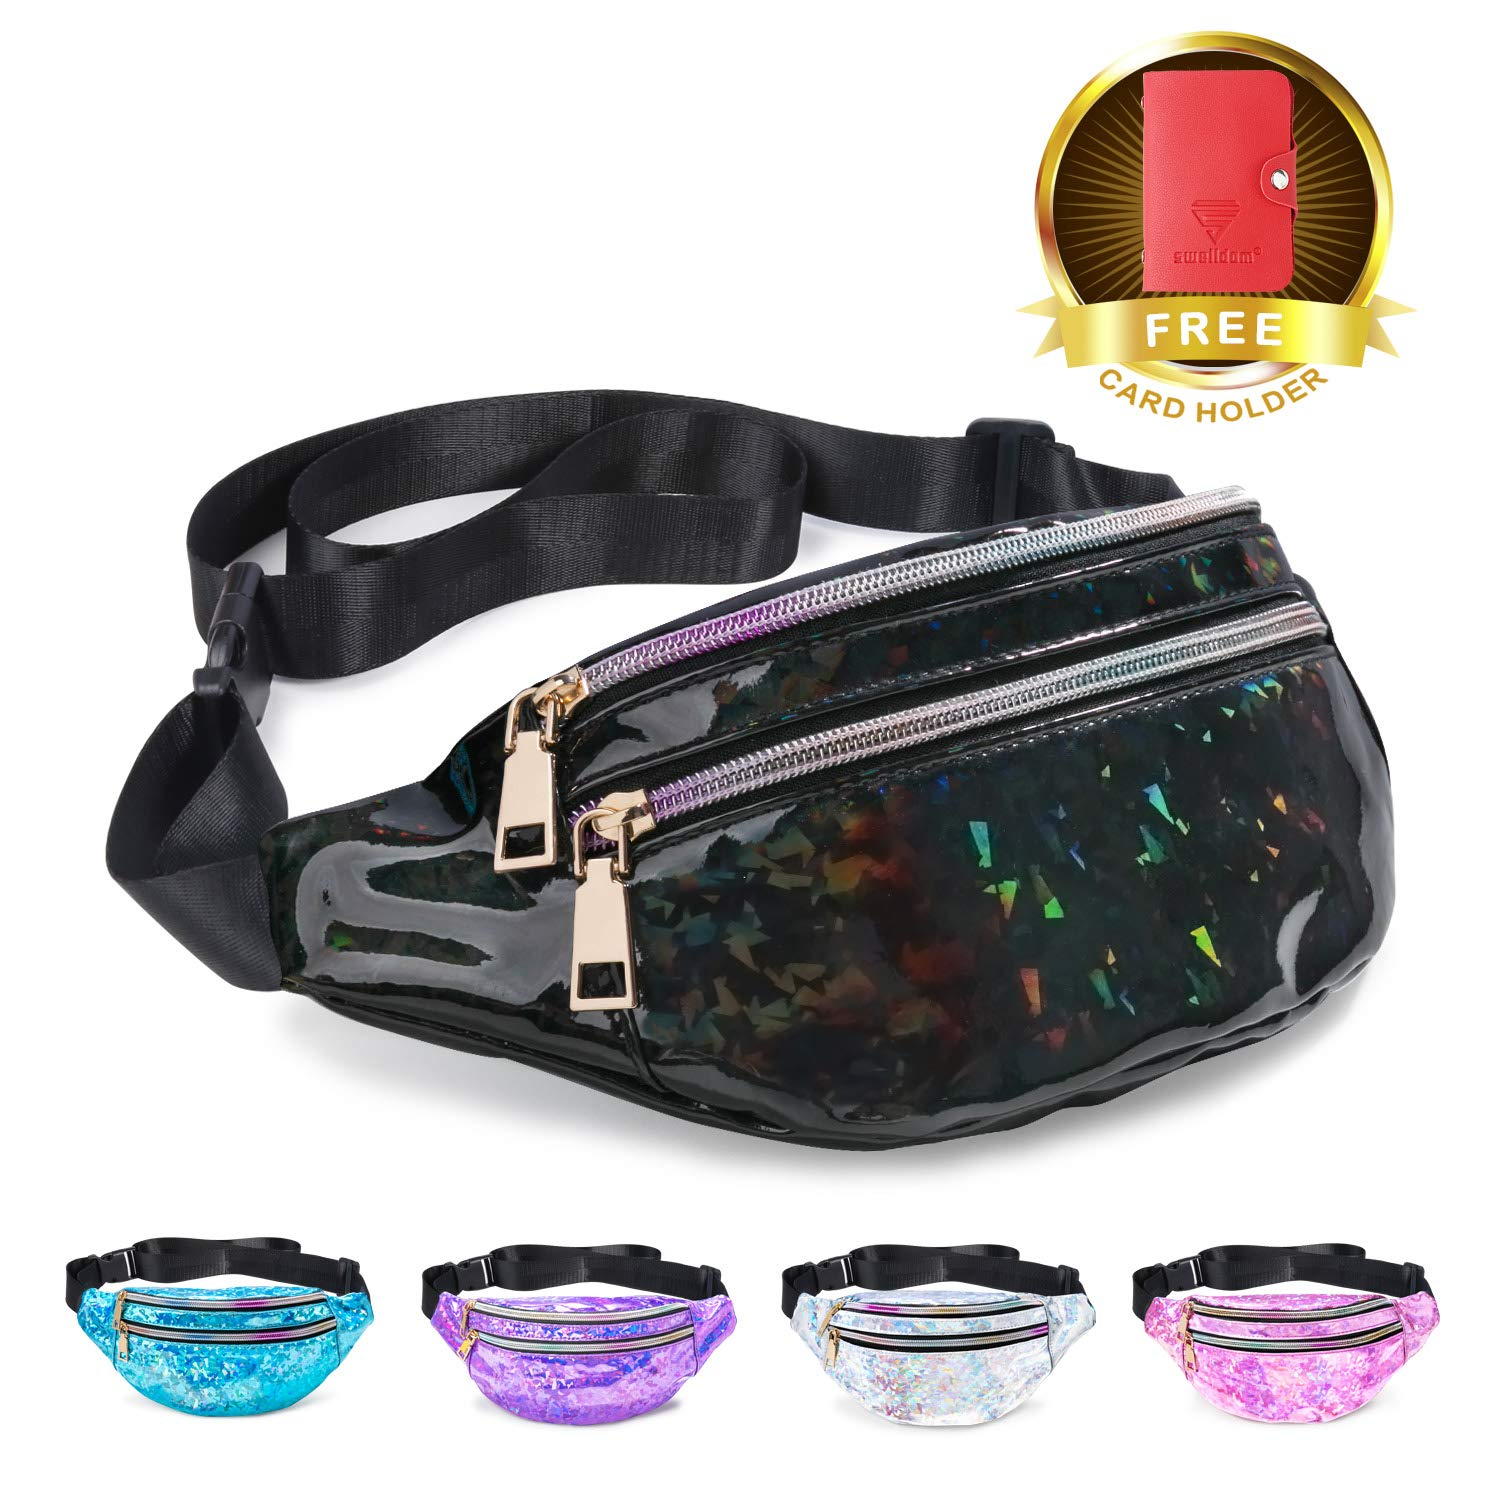 4aad4067c11b Fanny Pack Belt Bag, Holographic Fanny Packs for Women Men Kids, Fashion  Waterproof Waist Pack with 3 Pouches Adjustable Strap, Shiny Casual Bags  Cute ...